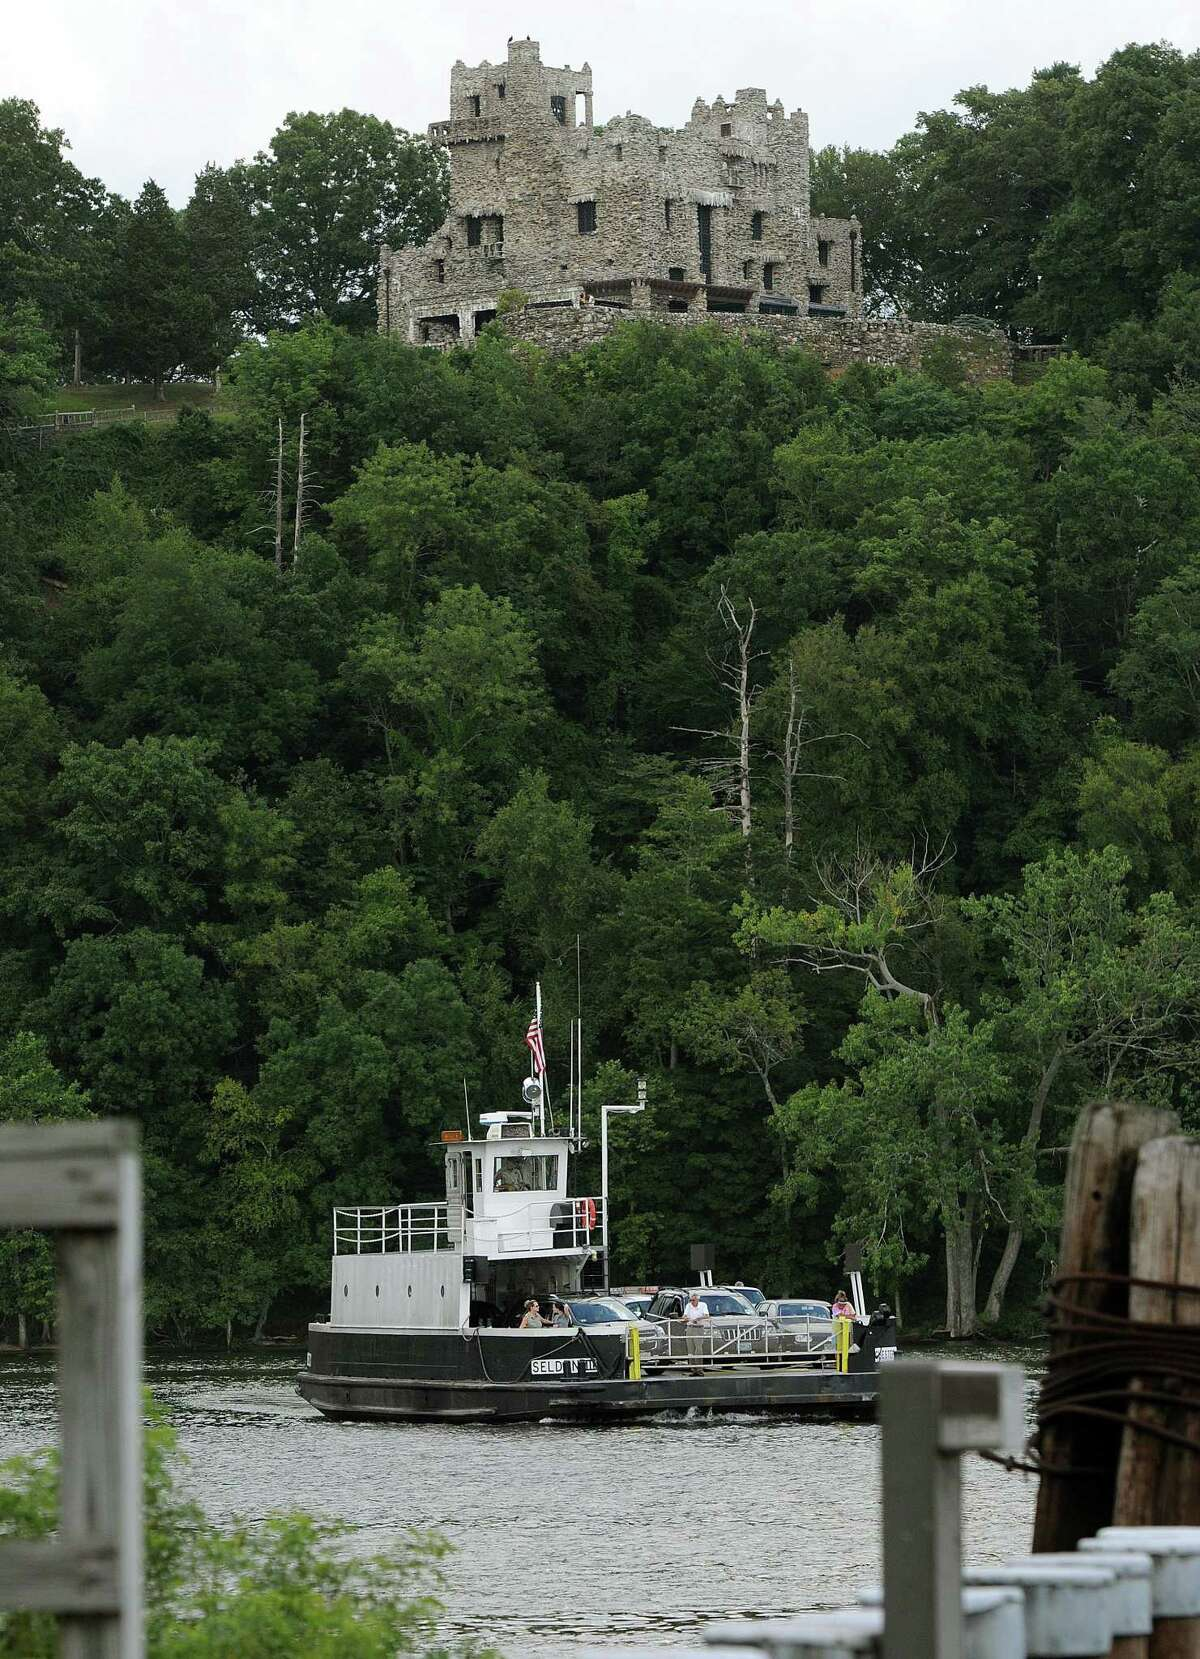 The Chester-Hadlyme Ferry crosses the CT River. Gillette Castle, a CT State Park. Photo by Mara Lavitt/New Haven Register 8/4/11